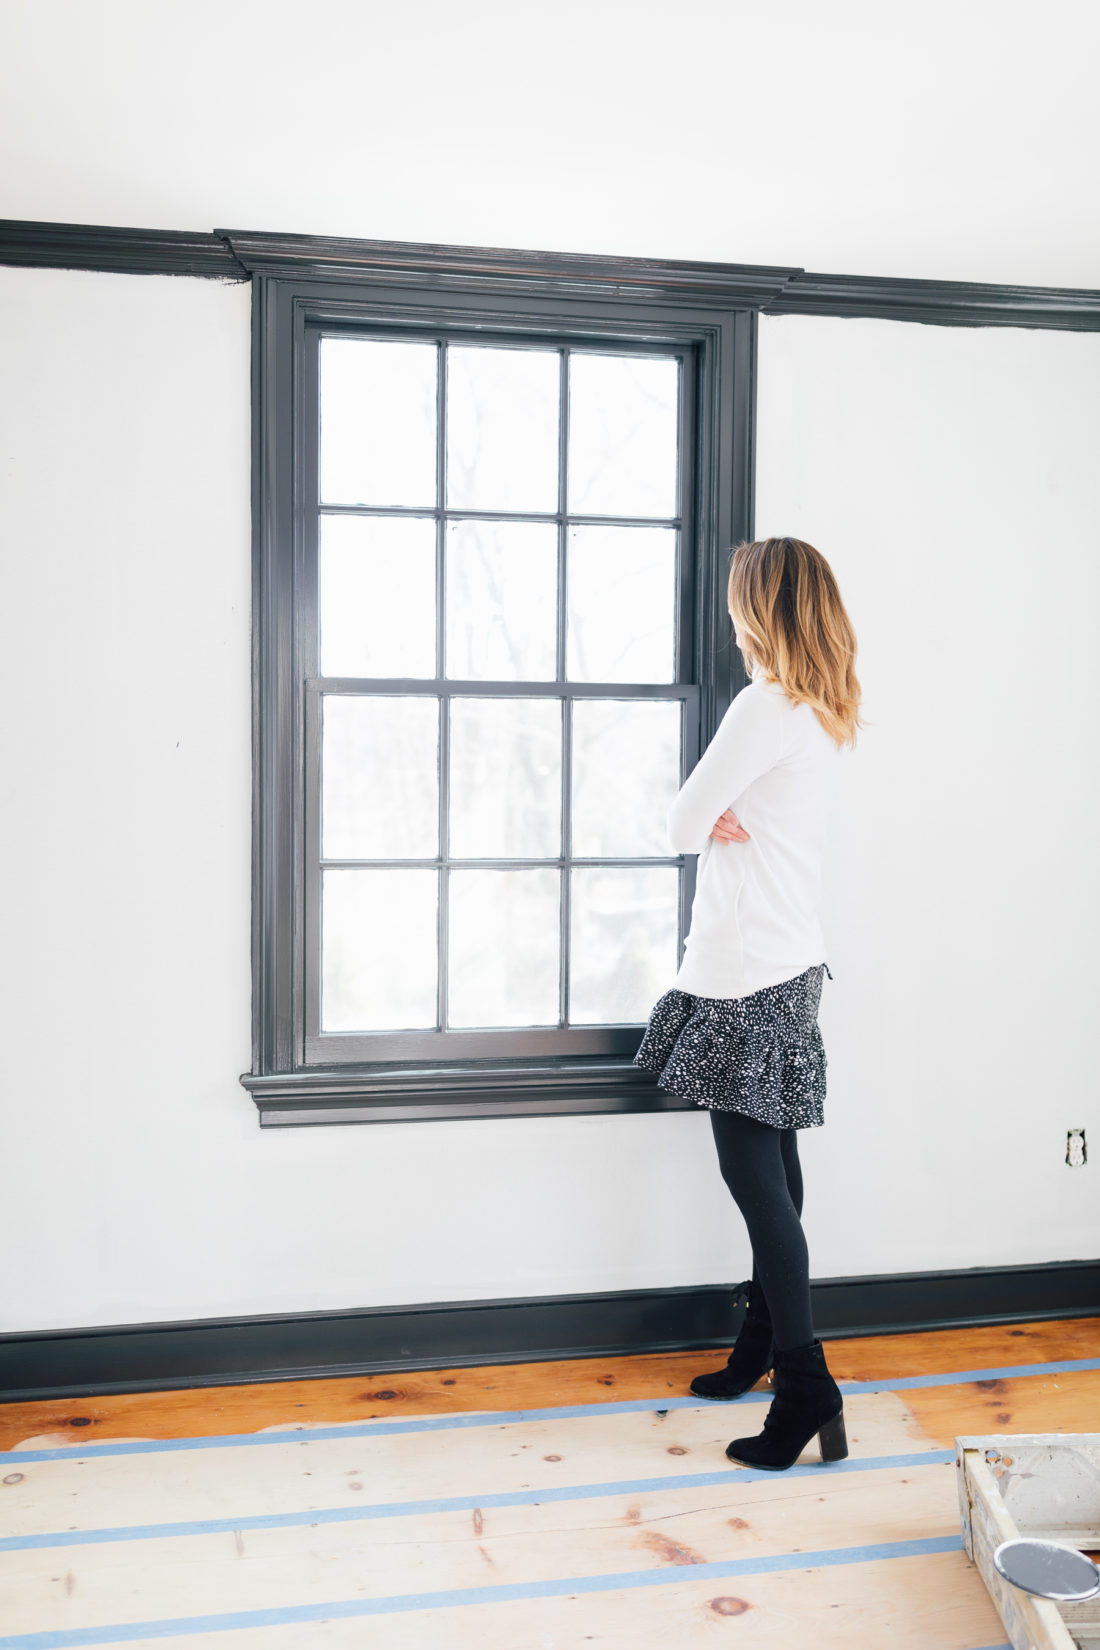 Eva Amurri Martino looks out the window during the renovation of her historic home.